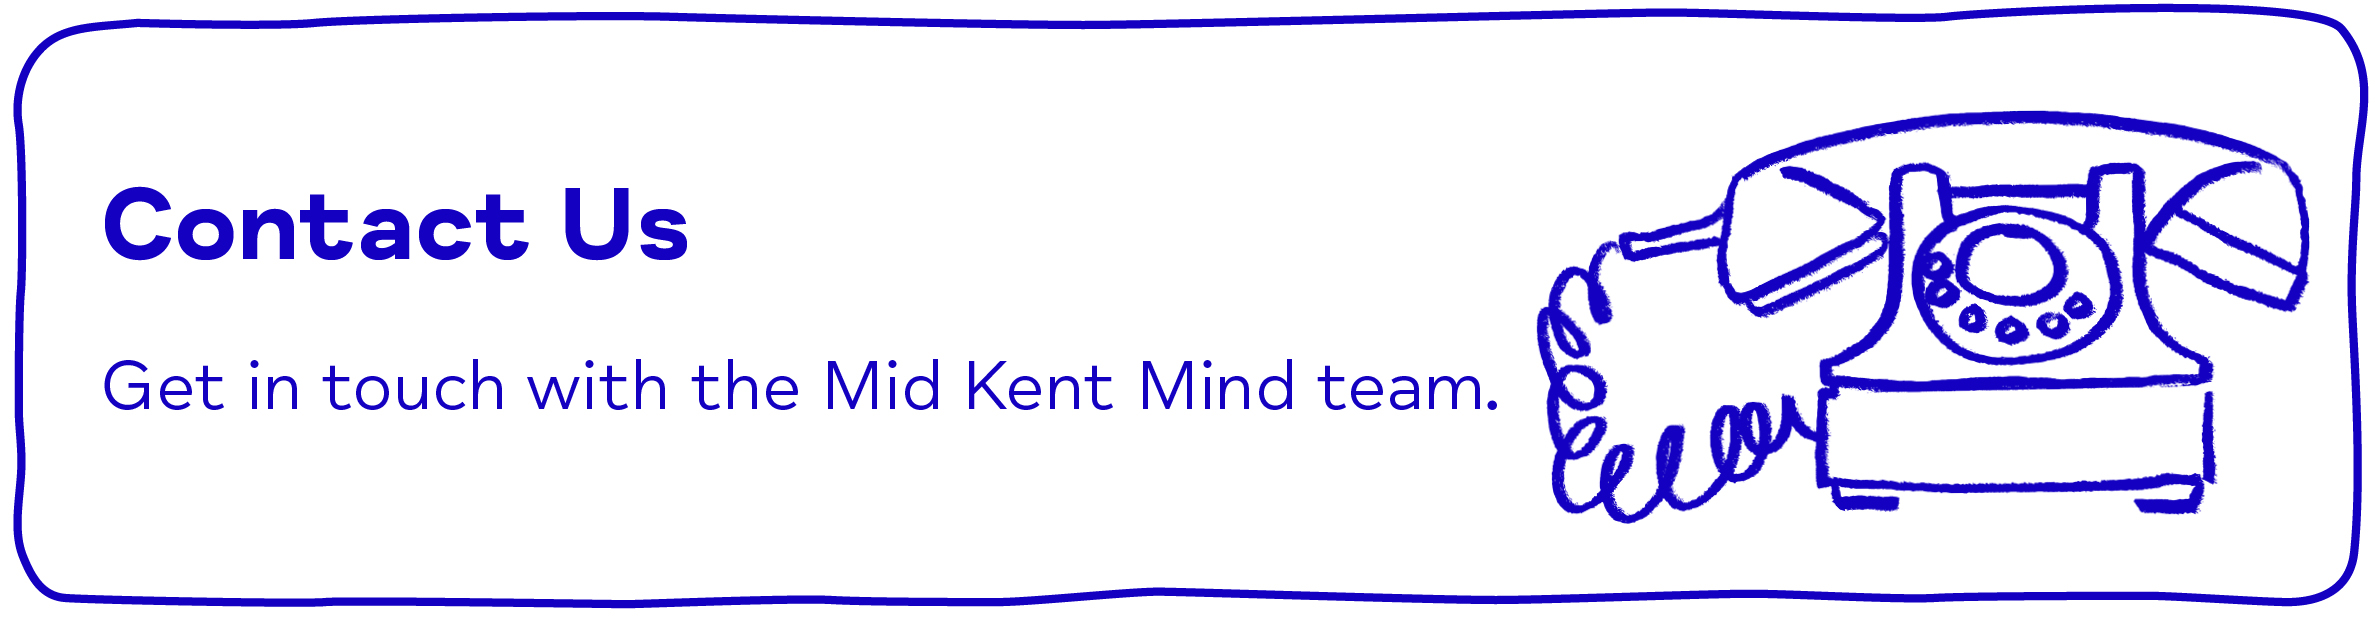 Contact Us - Get in touch with the Mid Kent Mind team